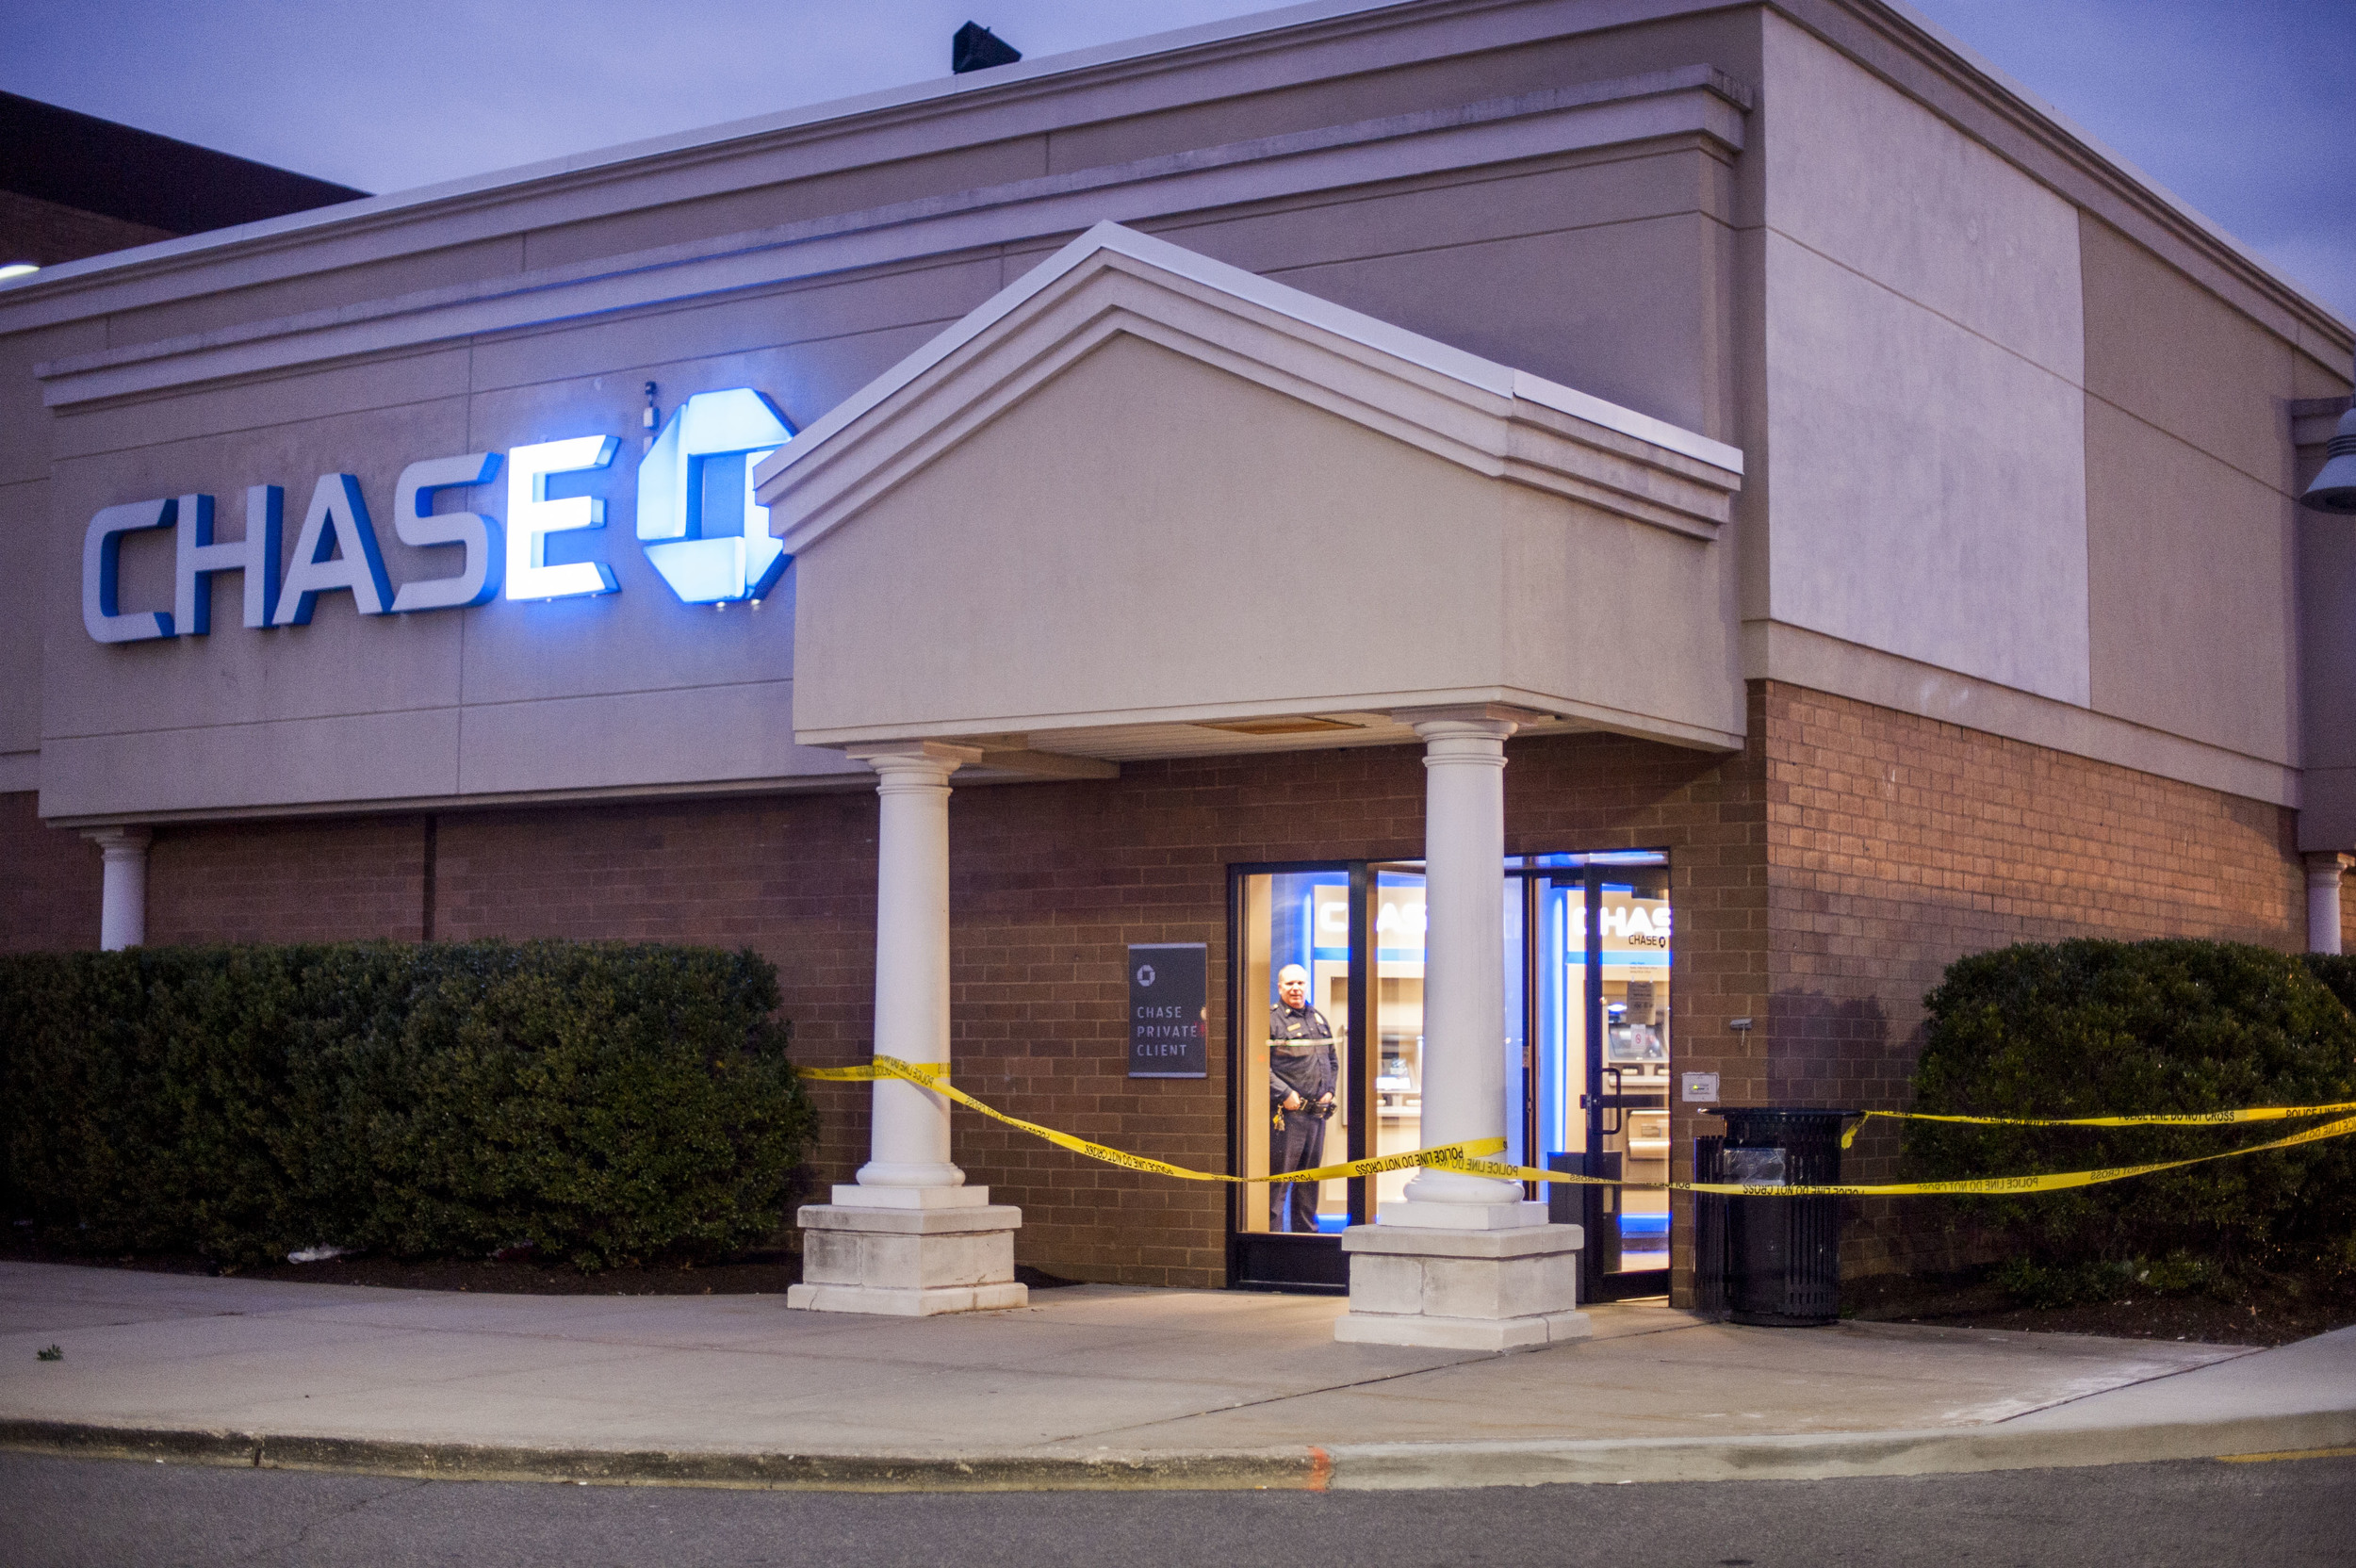 Police responded to a robbery around 2:37 p.m. at Chase bank at 17 Huntington Square in Elwood on Jan. 14. The suspect fled on foot and was described as 30 to 40 years old, between 5-foot-6 and 5-foot-8 and was wearing a black mask, a gray hooded jacket and jeans.